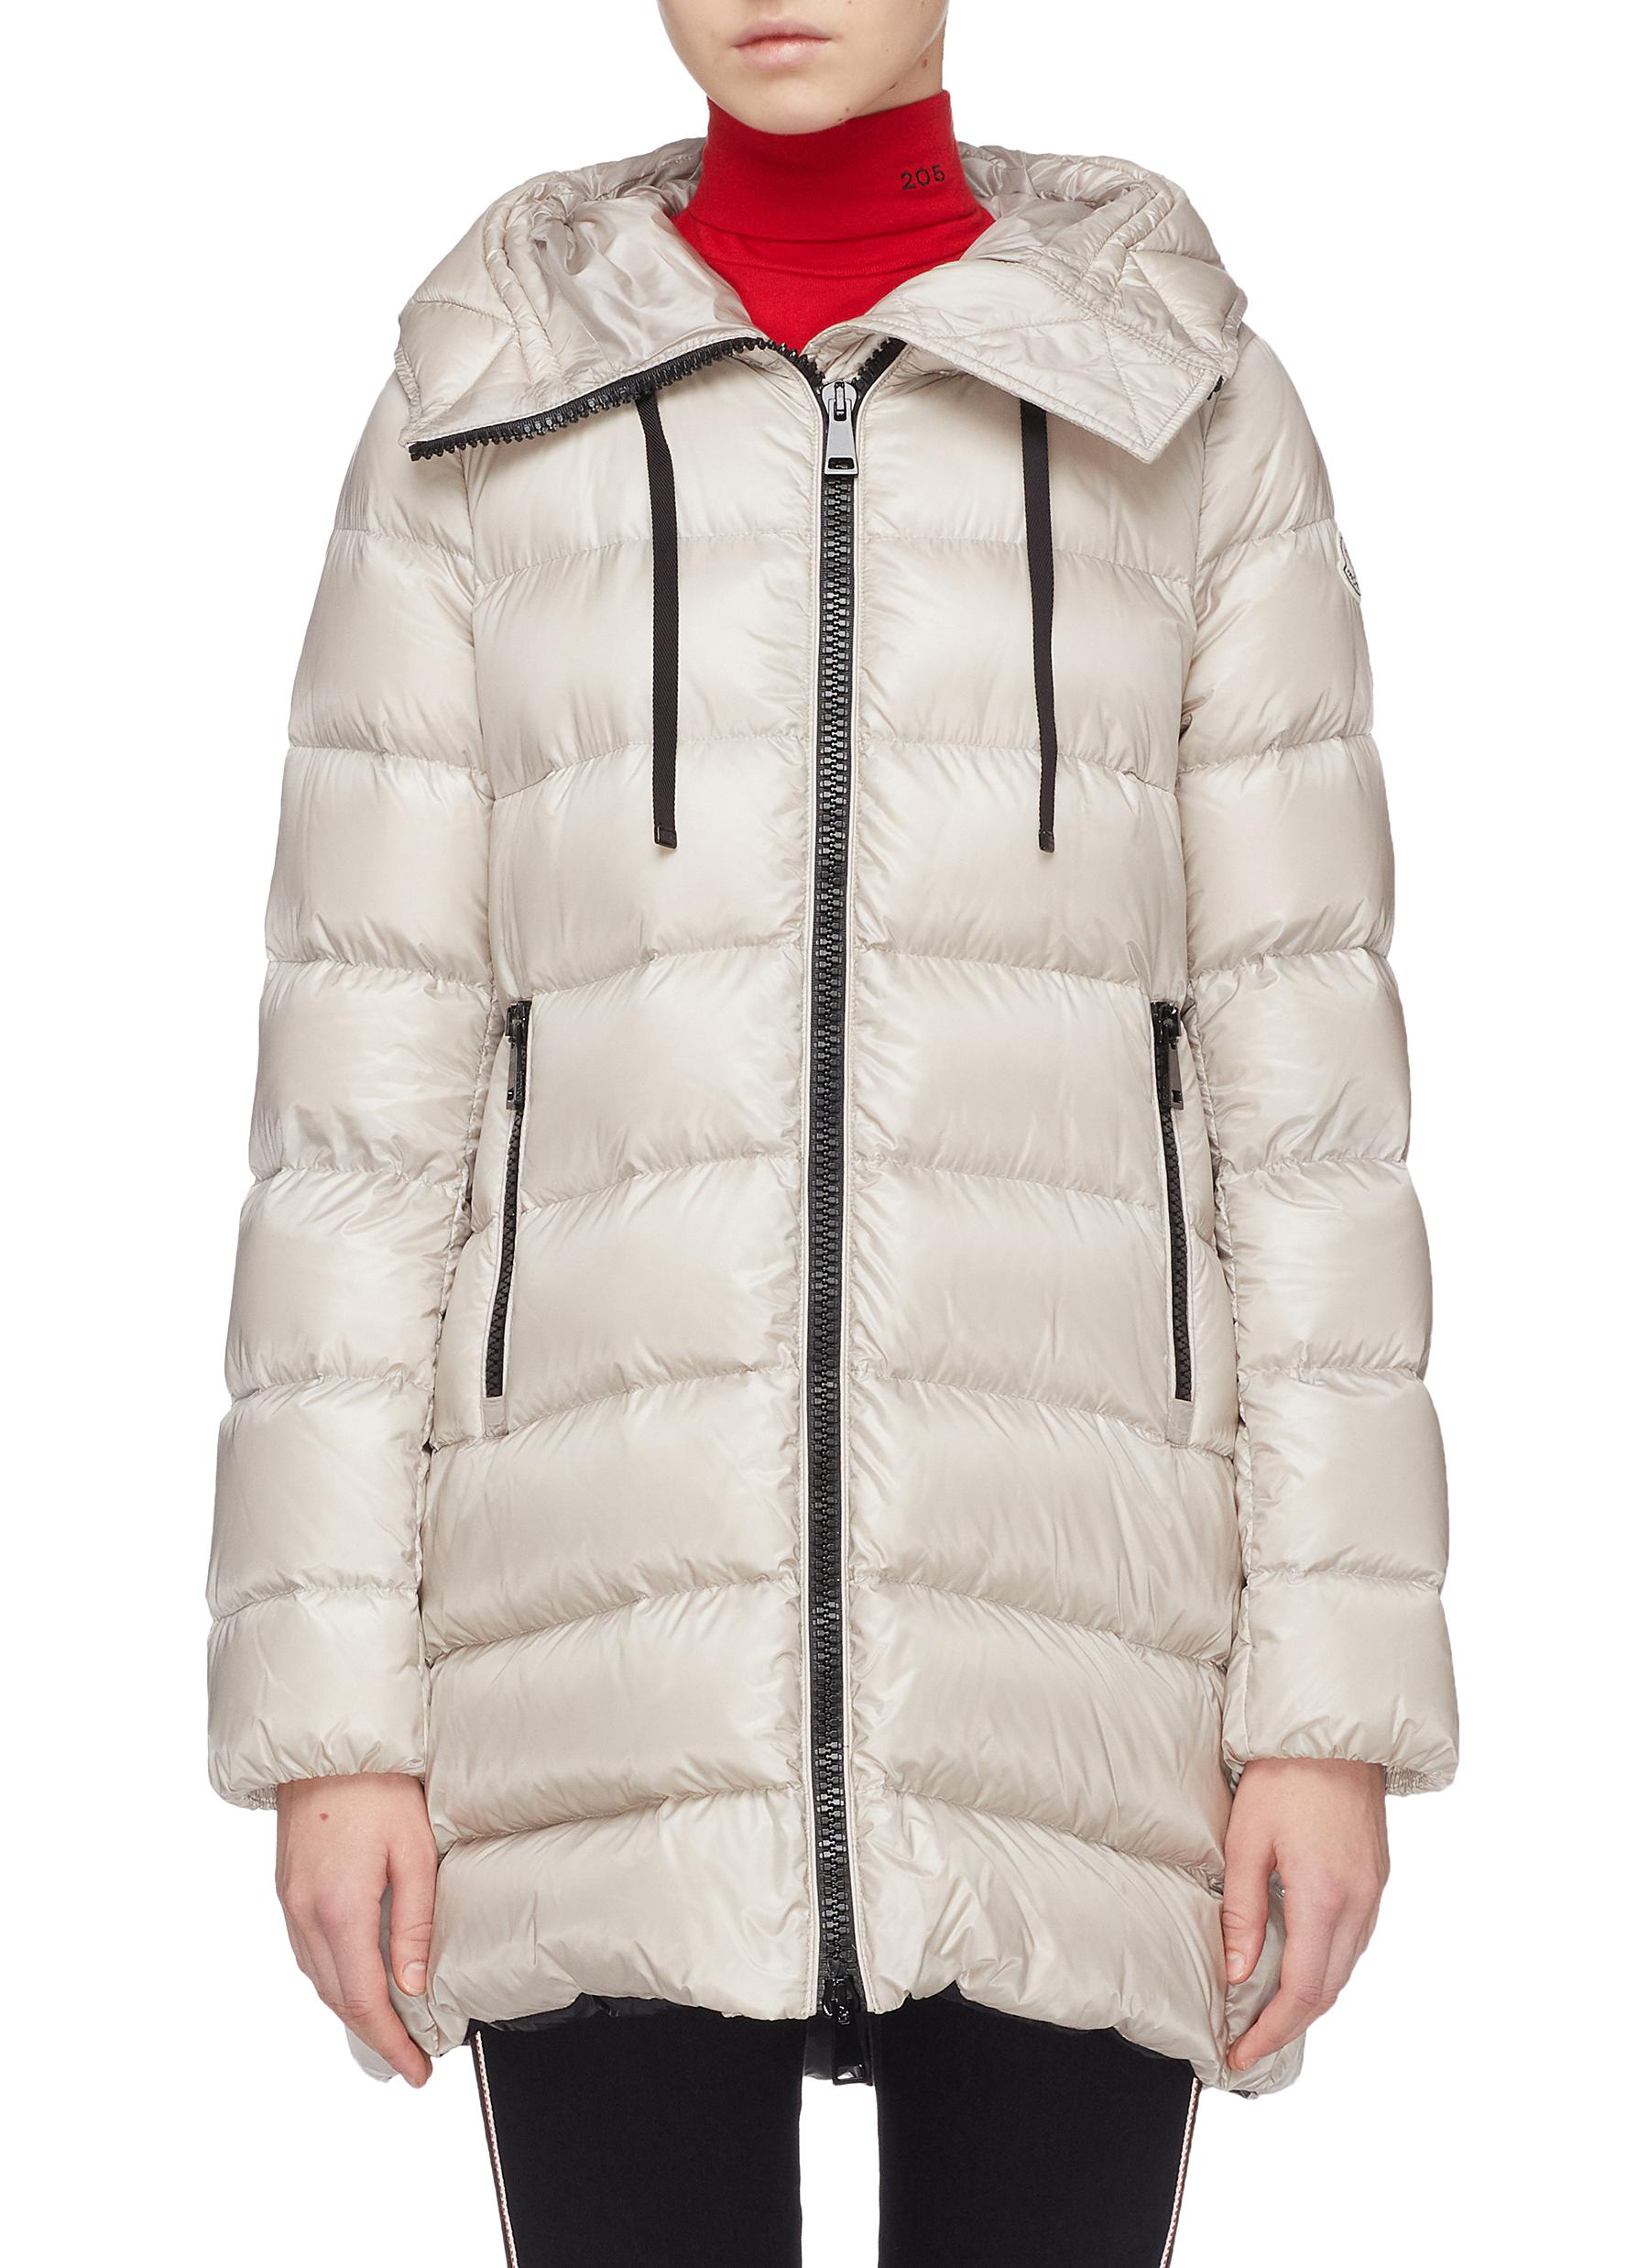 Main View - Click To Enlarge - Moncler - 'Suyen' hooded down puffer coat